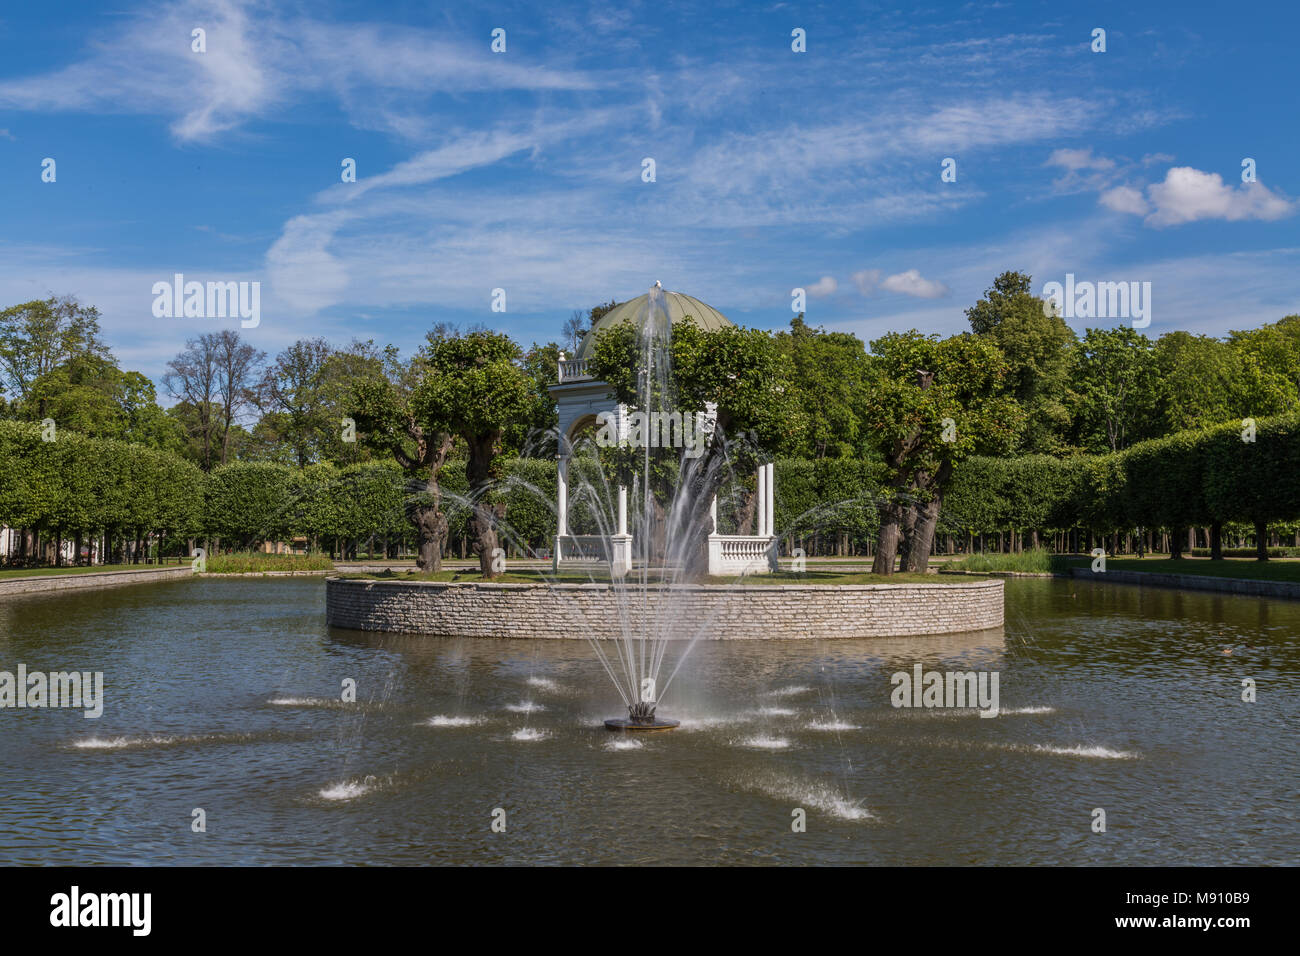 Pond And Fountains In Park Kadriorg - Stock Image